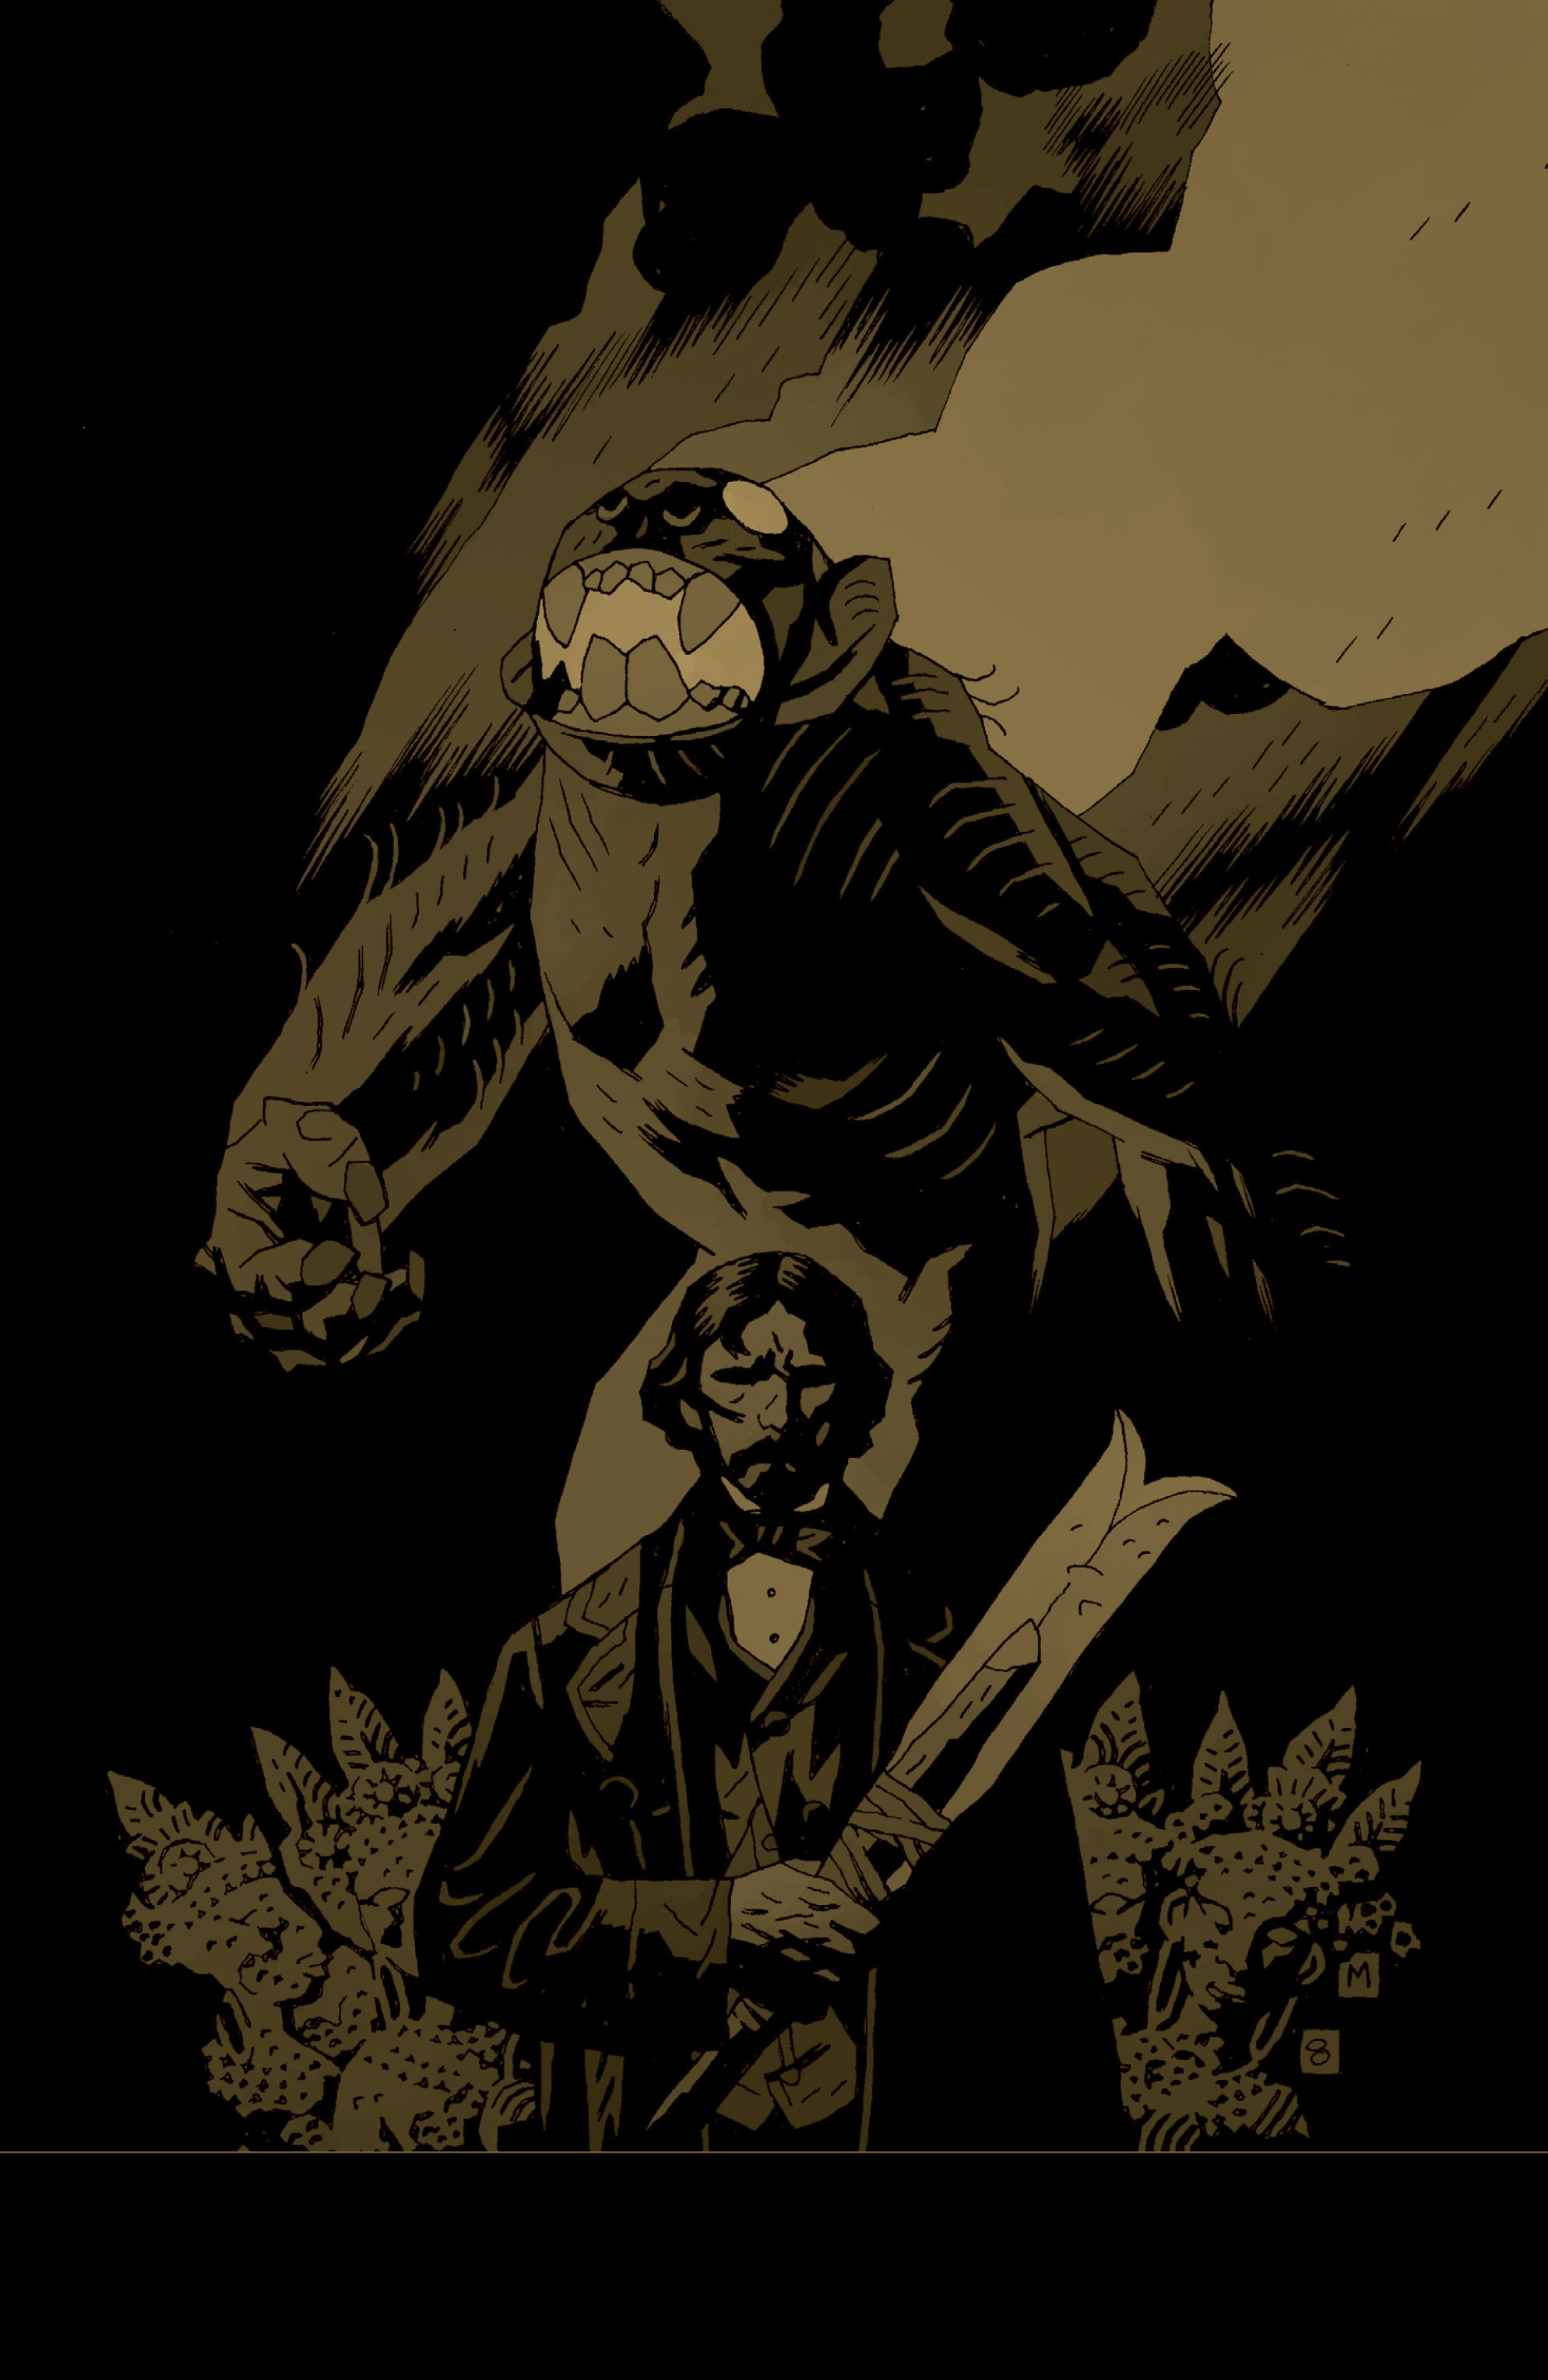 Read online Sir Edward Grey, Witchfinder: In the Service of Angels comic -  Issue # TPB - 7